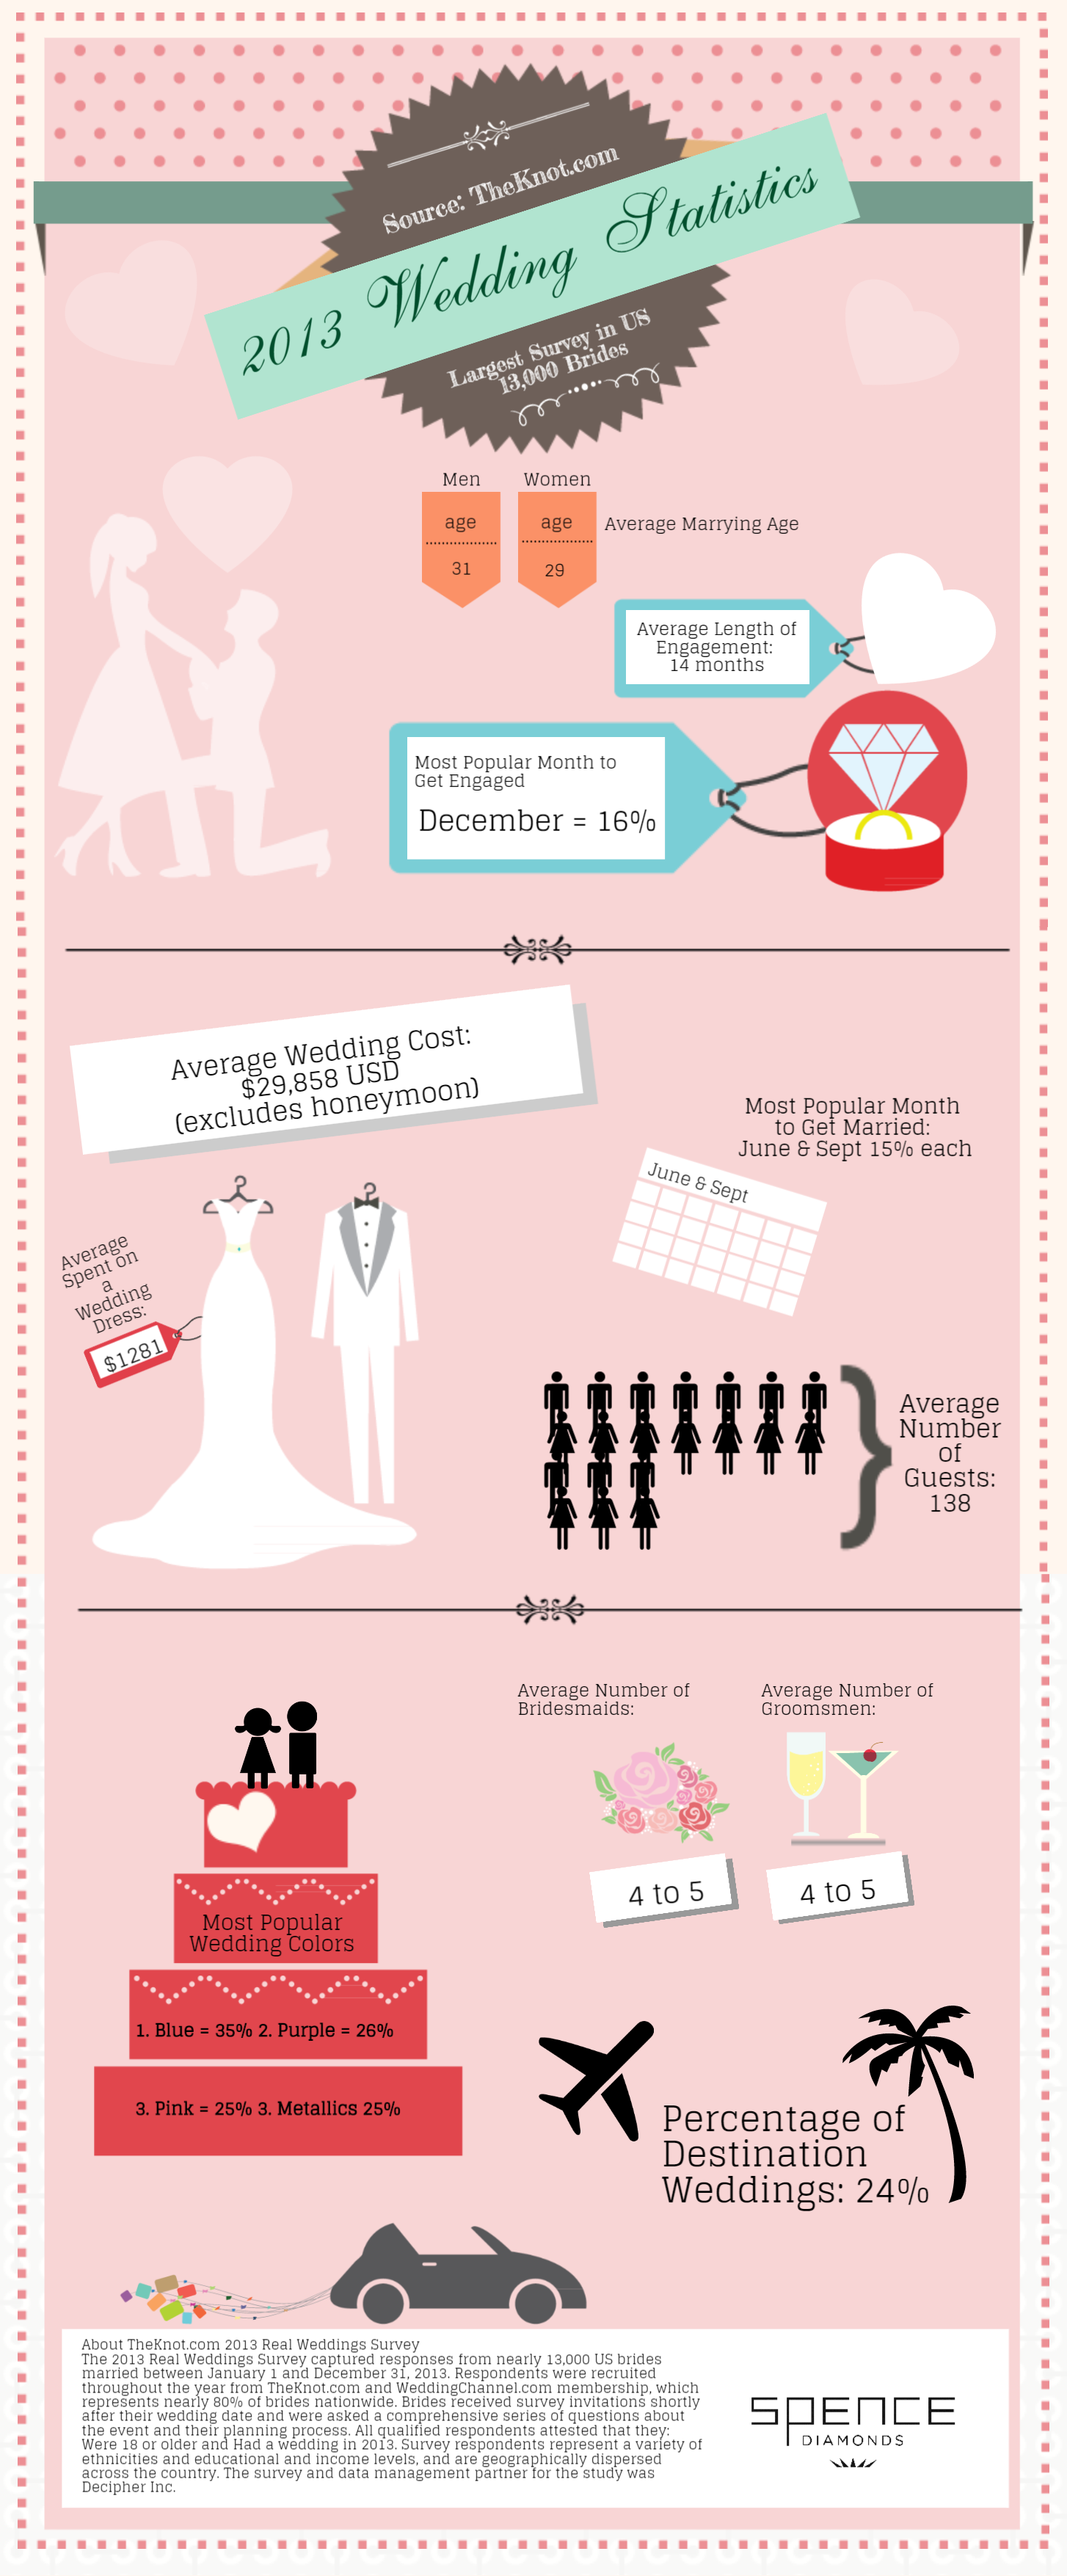 TheKnot.2013 Wedding Statistics | the Spence Diamonds Blog